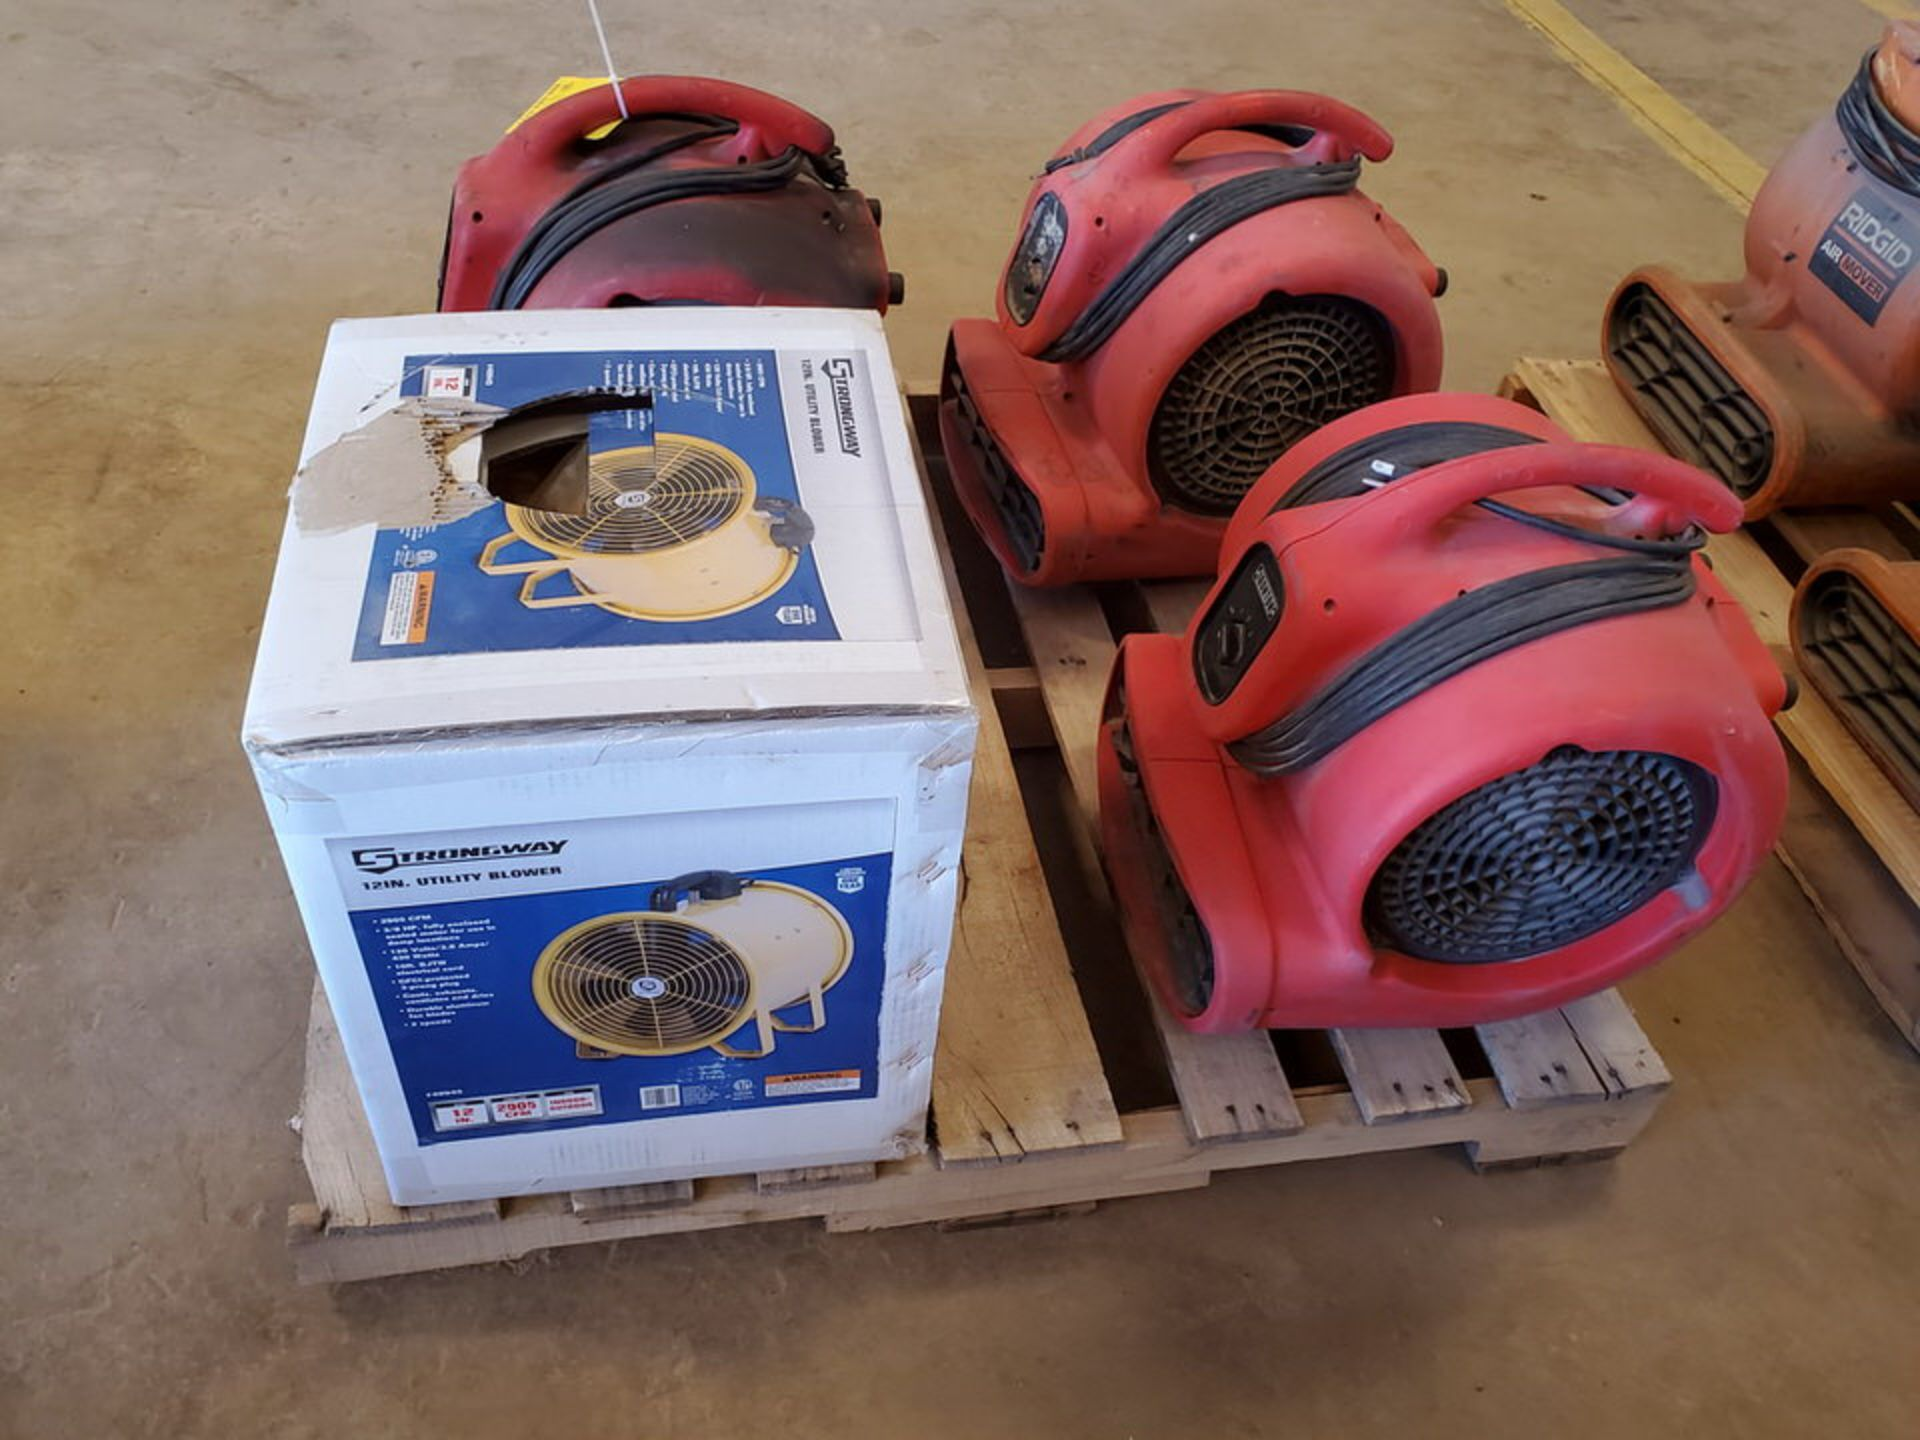 Strongway & Ironton (4) Air Blowers (3) 115V, 1HP, 8.5A; (1) 120V, 3.8A, 430W, 1300RPM - Image 3 of 5